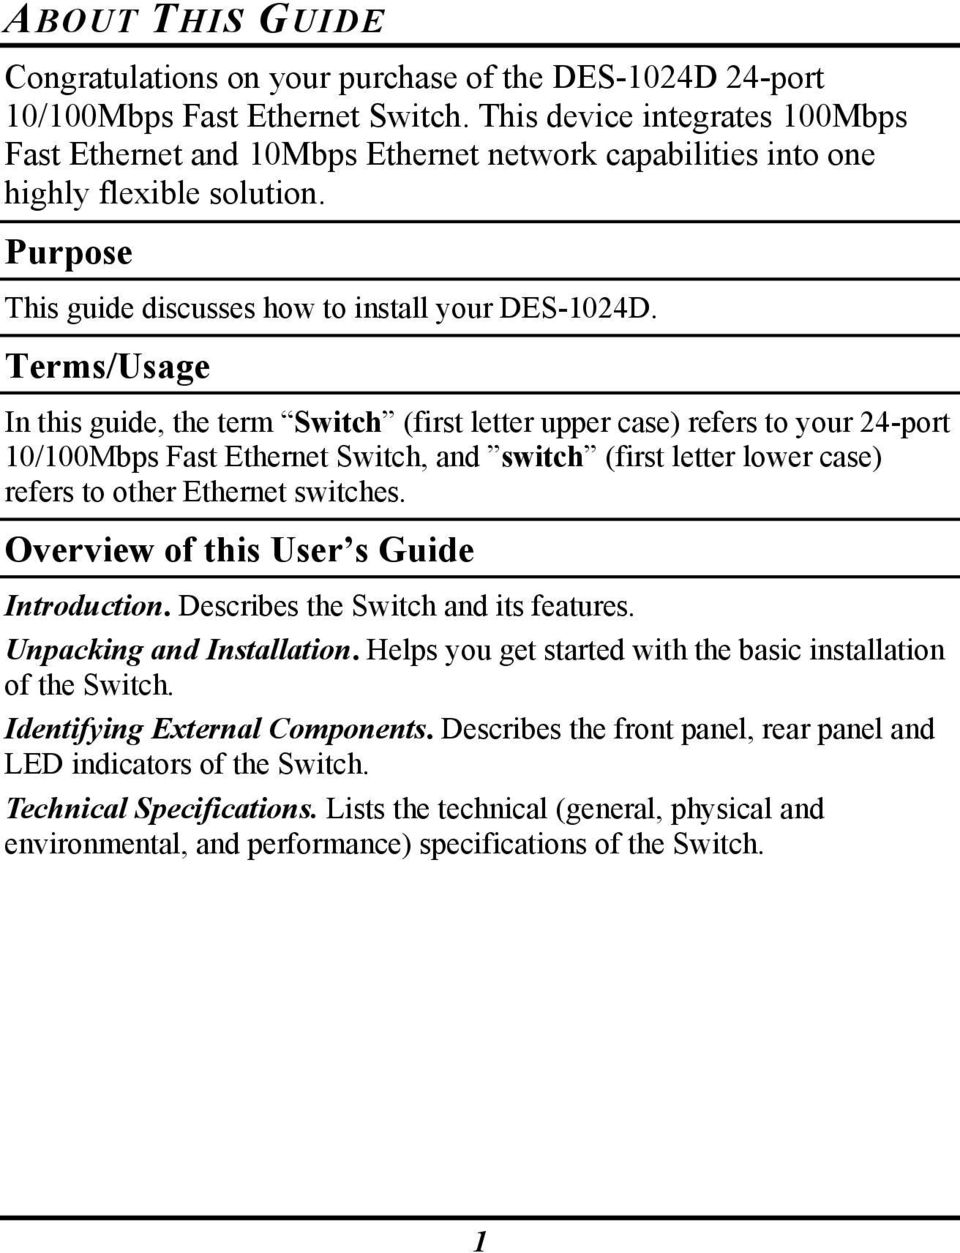 Terms/Usage In this guide, the term Switch (first letter upper case) refers to your 24-port 10/100Mbps Fast Ethernet Switch, and switch (first letter lower case) refers to other Ethernet switches.